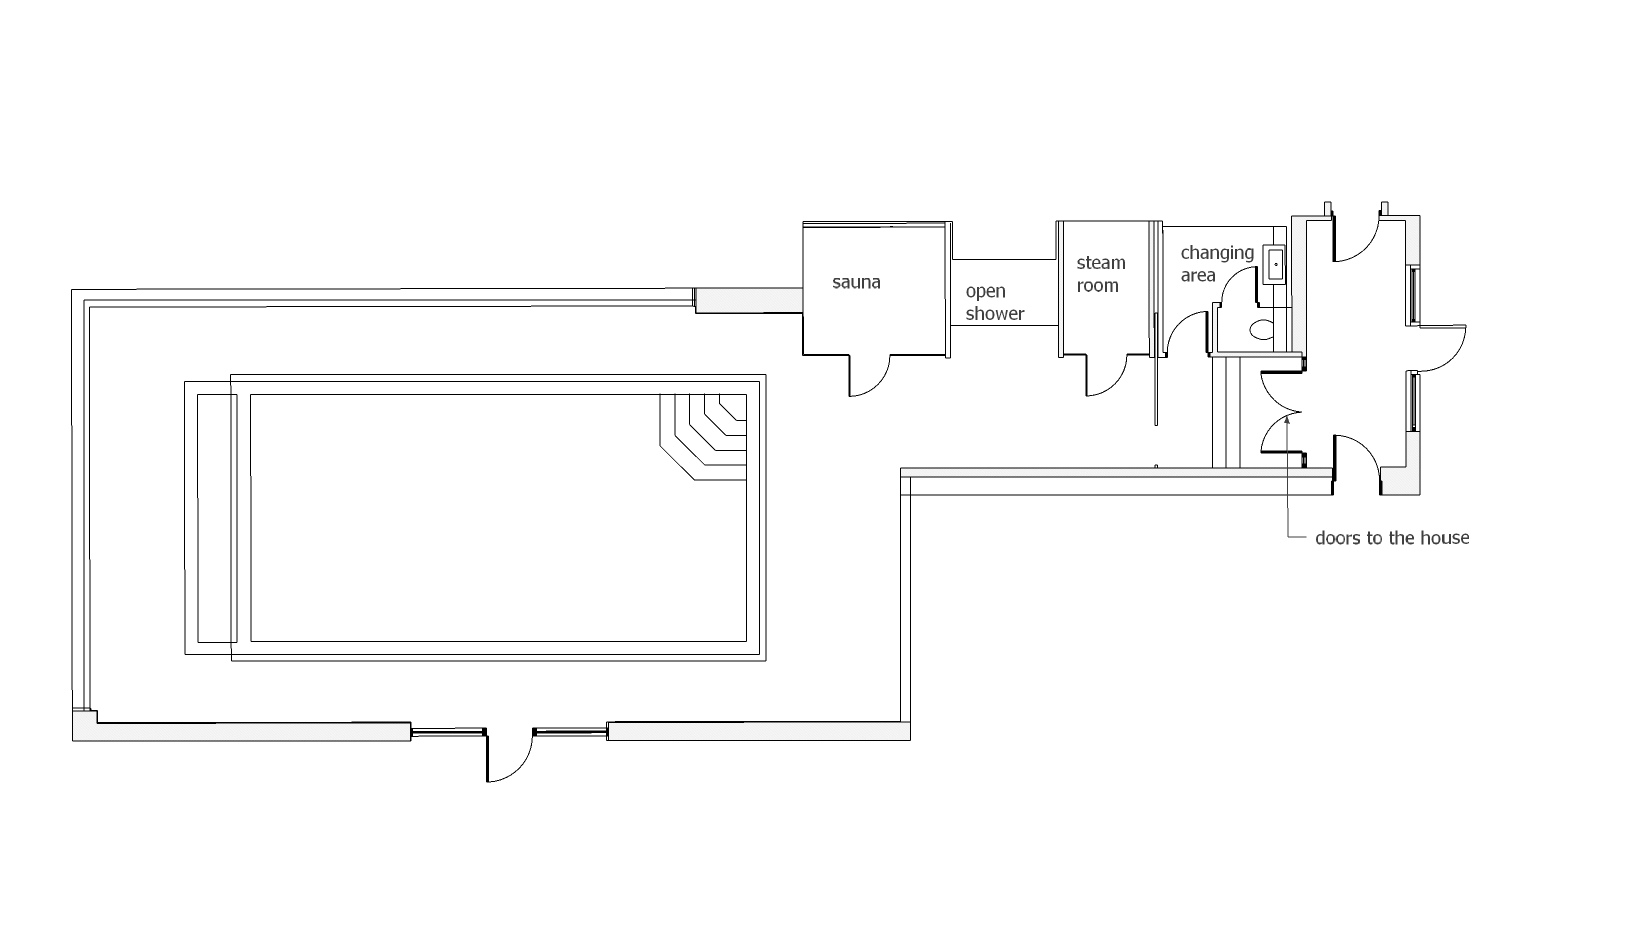 The proposed floor plan showing the pool and gym areas.